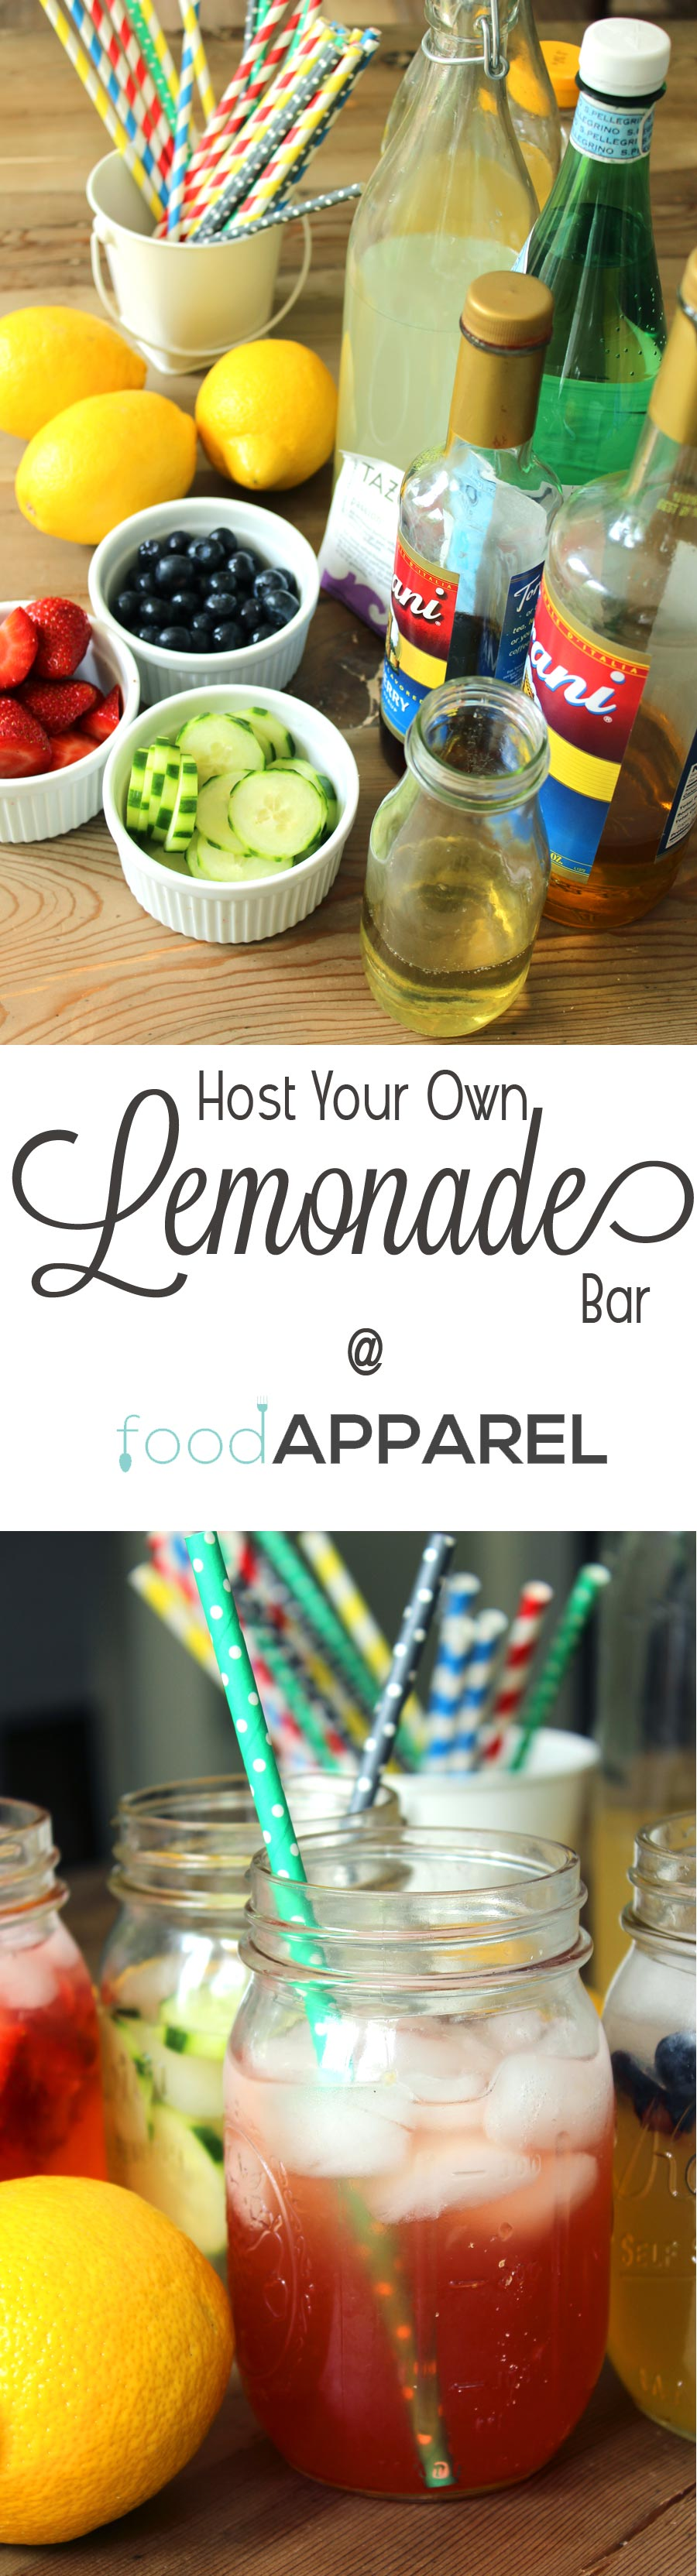 Host Your Own Lemonade Bar! Find recipes for syrups, mix-ins, and more ideas!